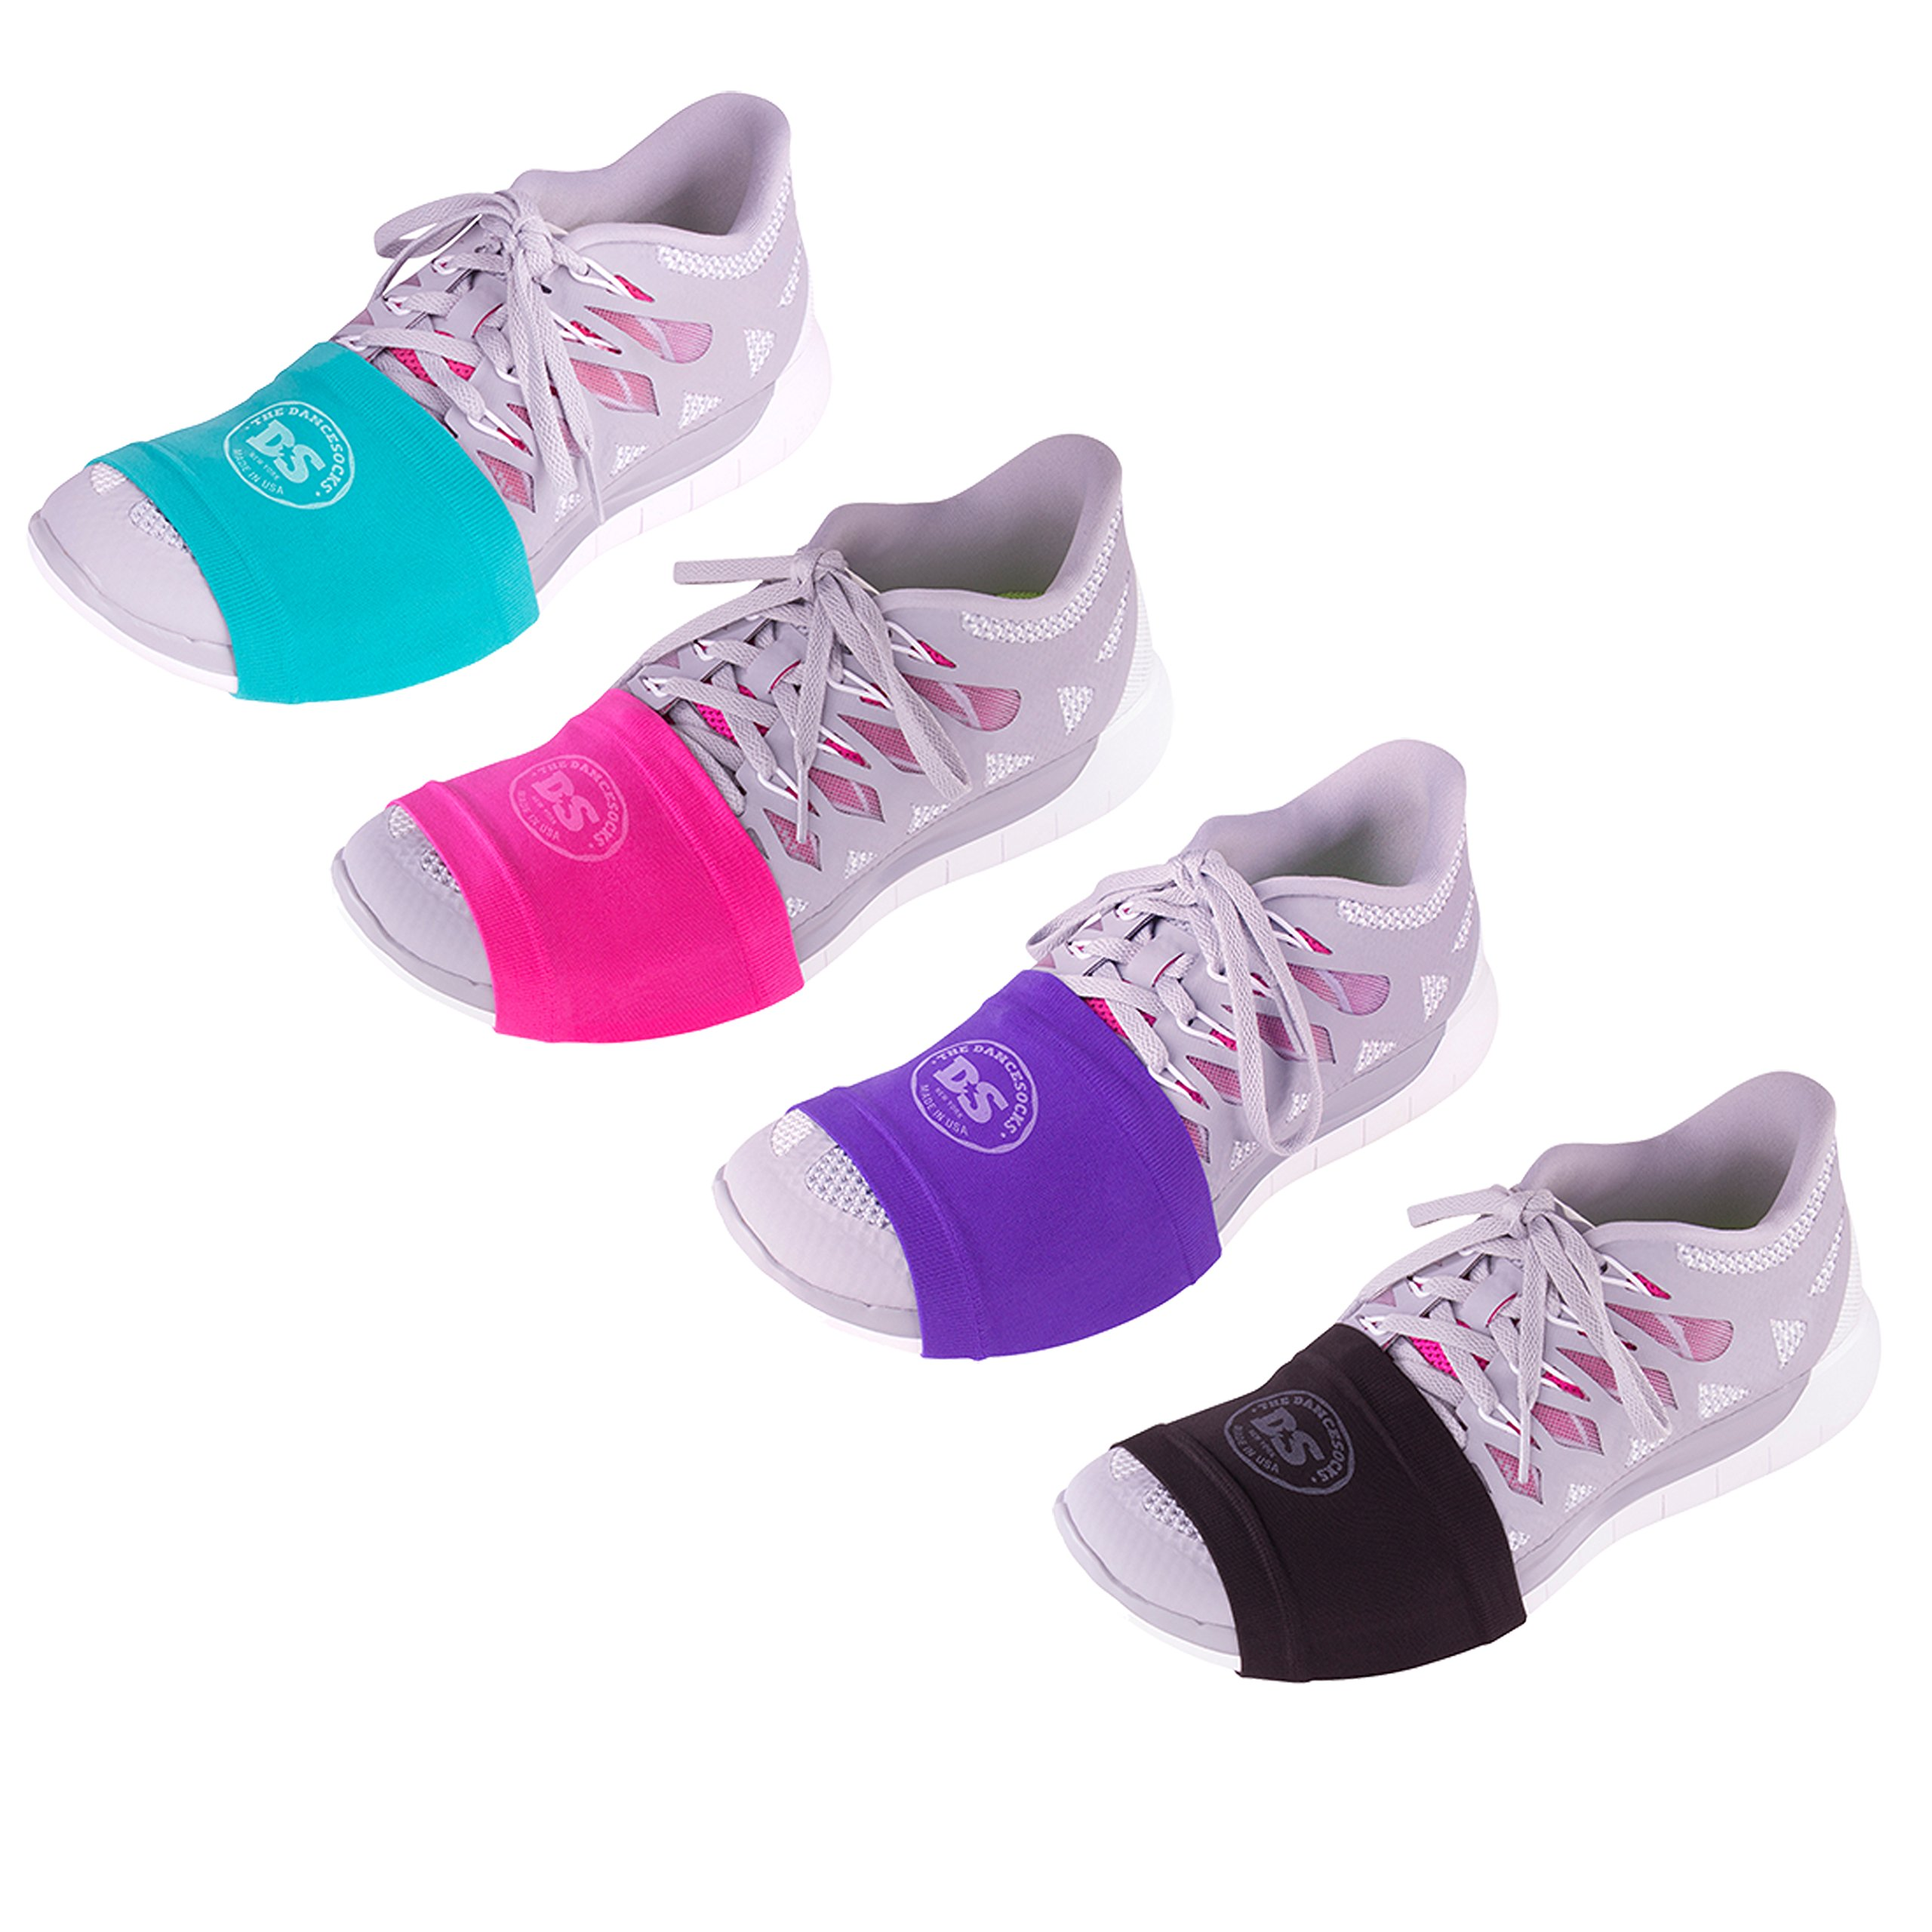 THE DANCESOCKS - Sneaker Socks for Dancing on Smooth Floors